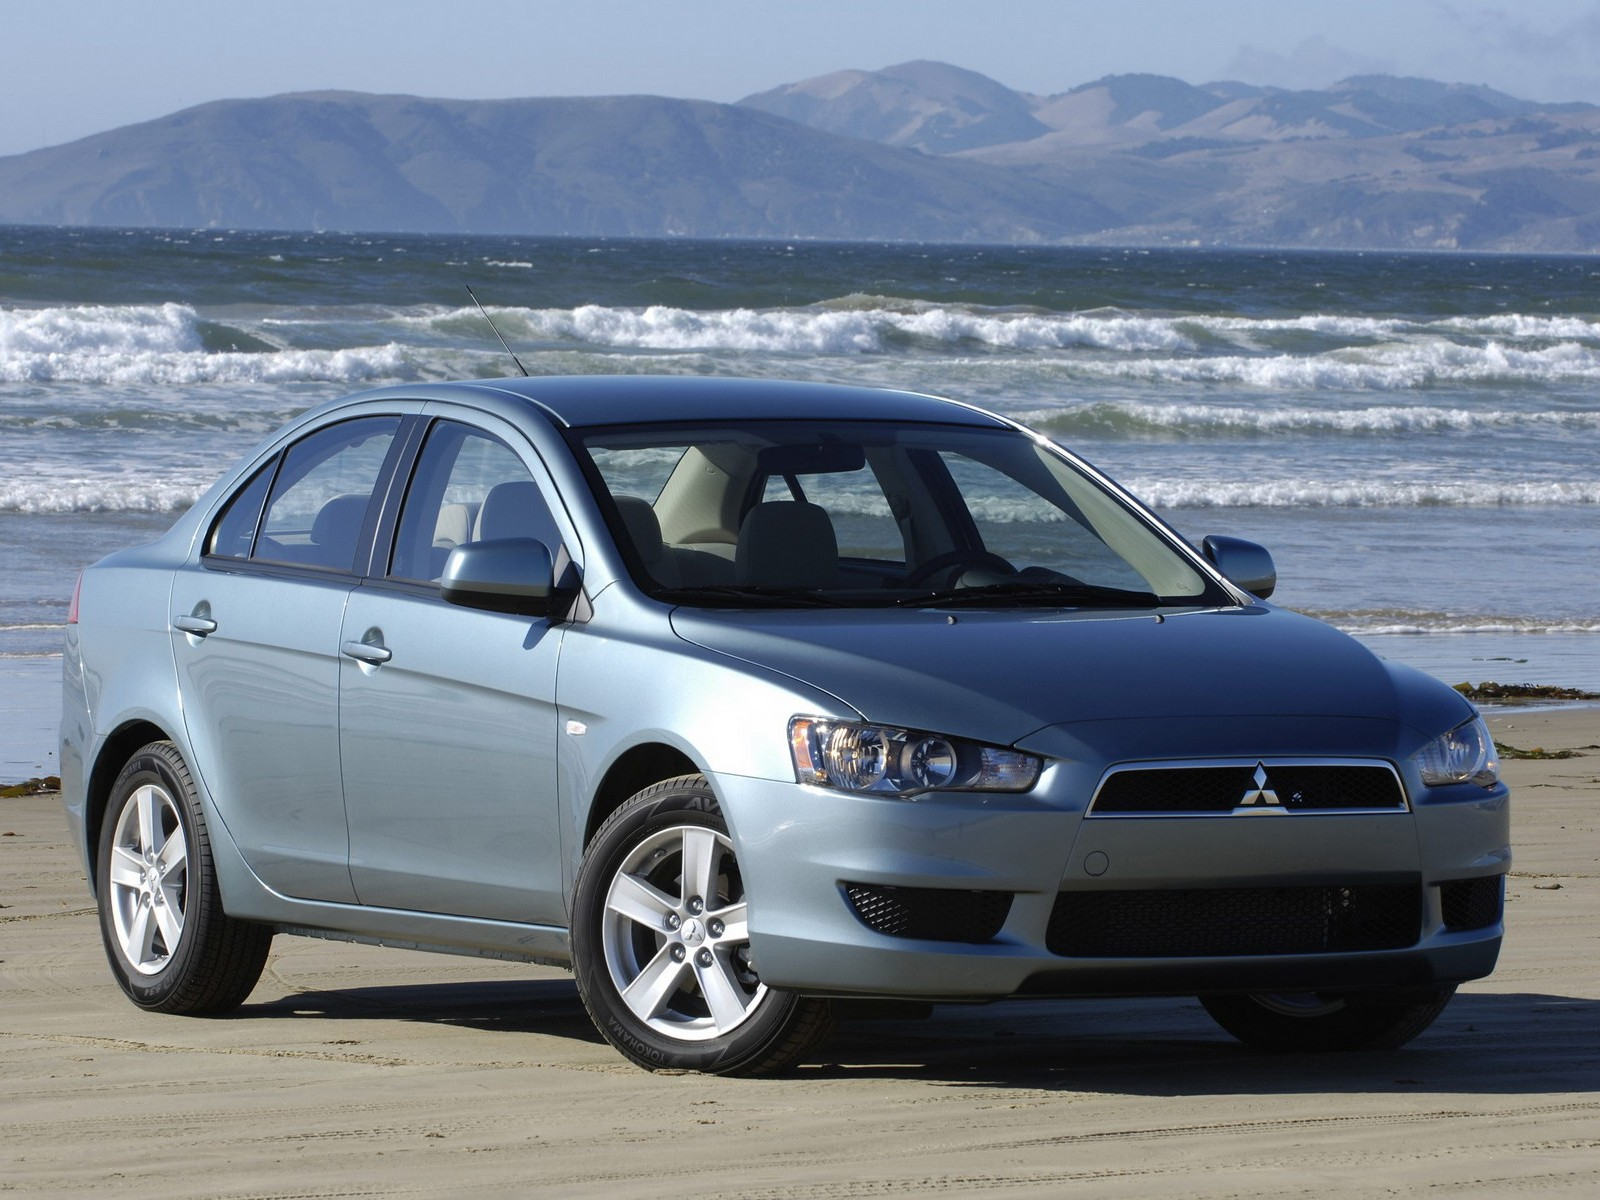 Sport Car Mitsubishi Lancer Wallpapers Picture Images Snaps Photo